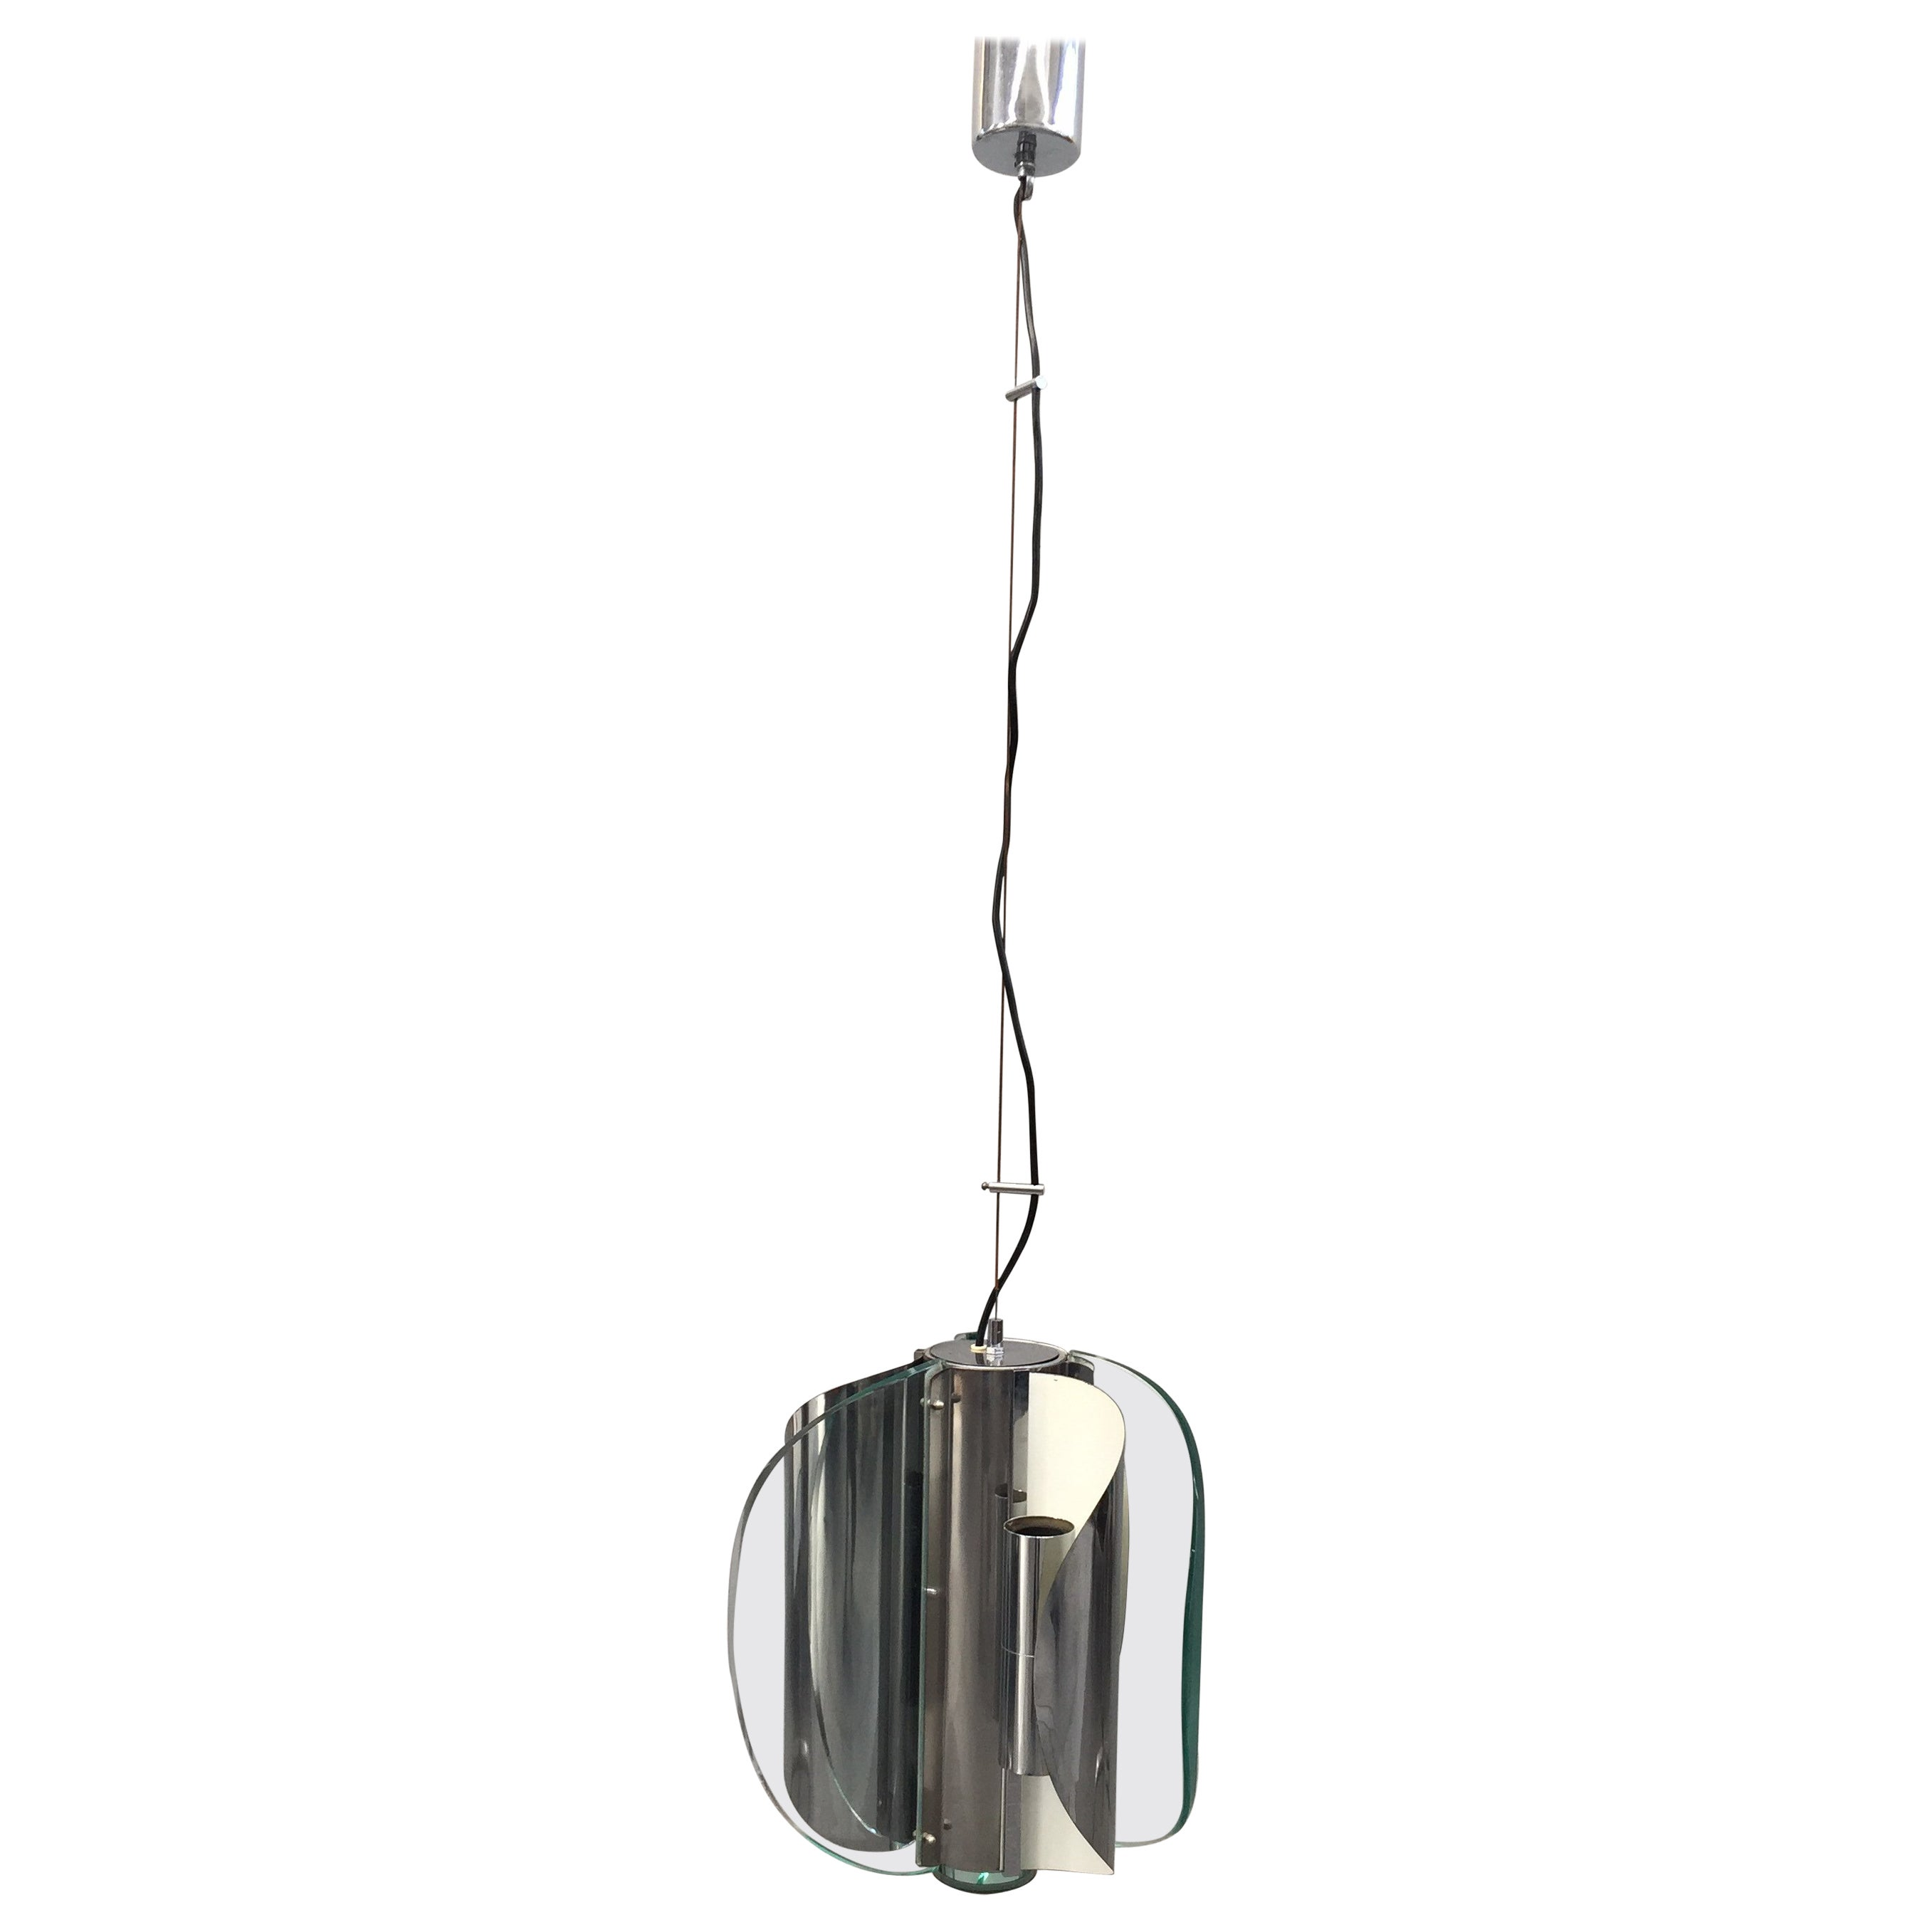 Fontana Arte Chrome And Glass Fixture By Fontana Arte